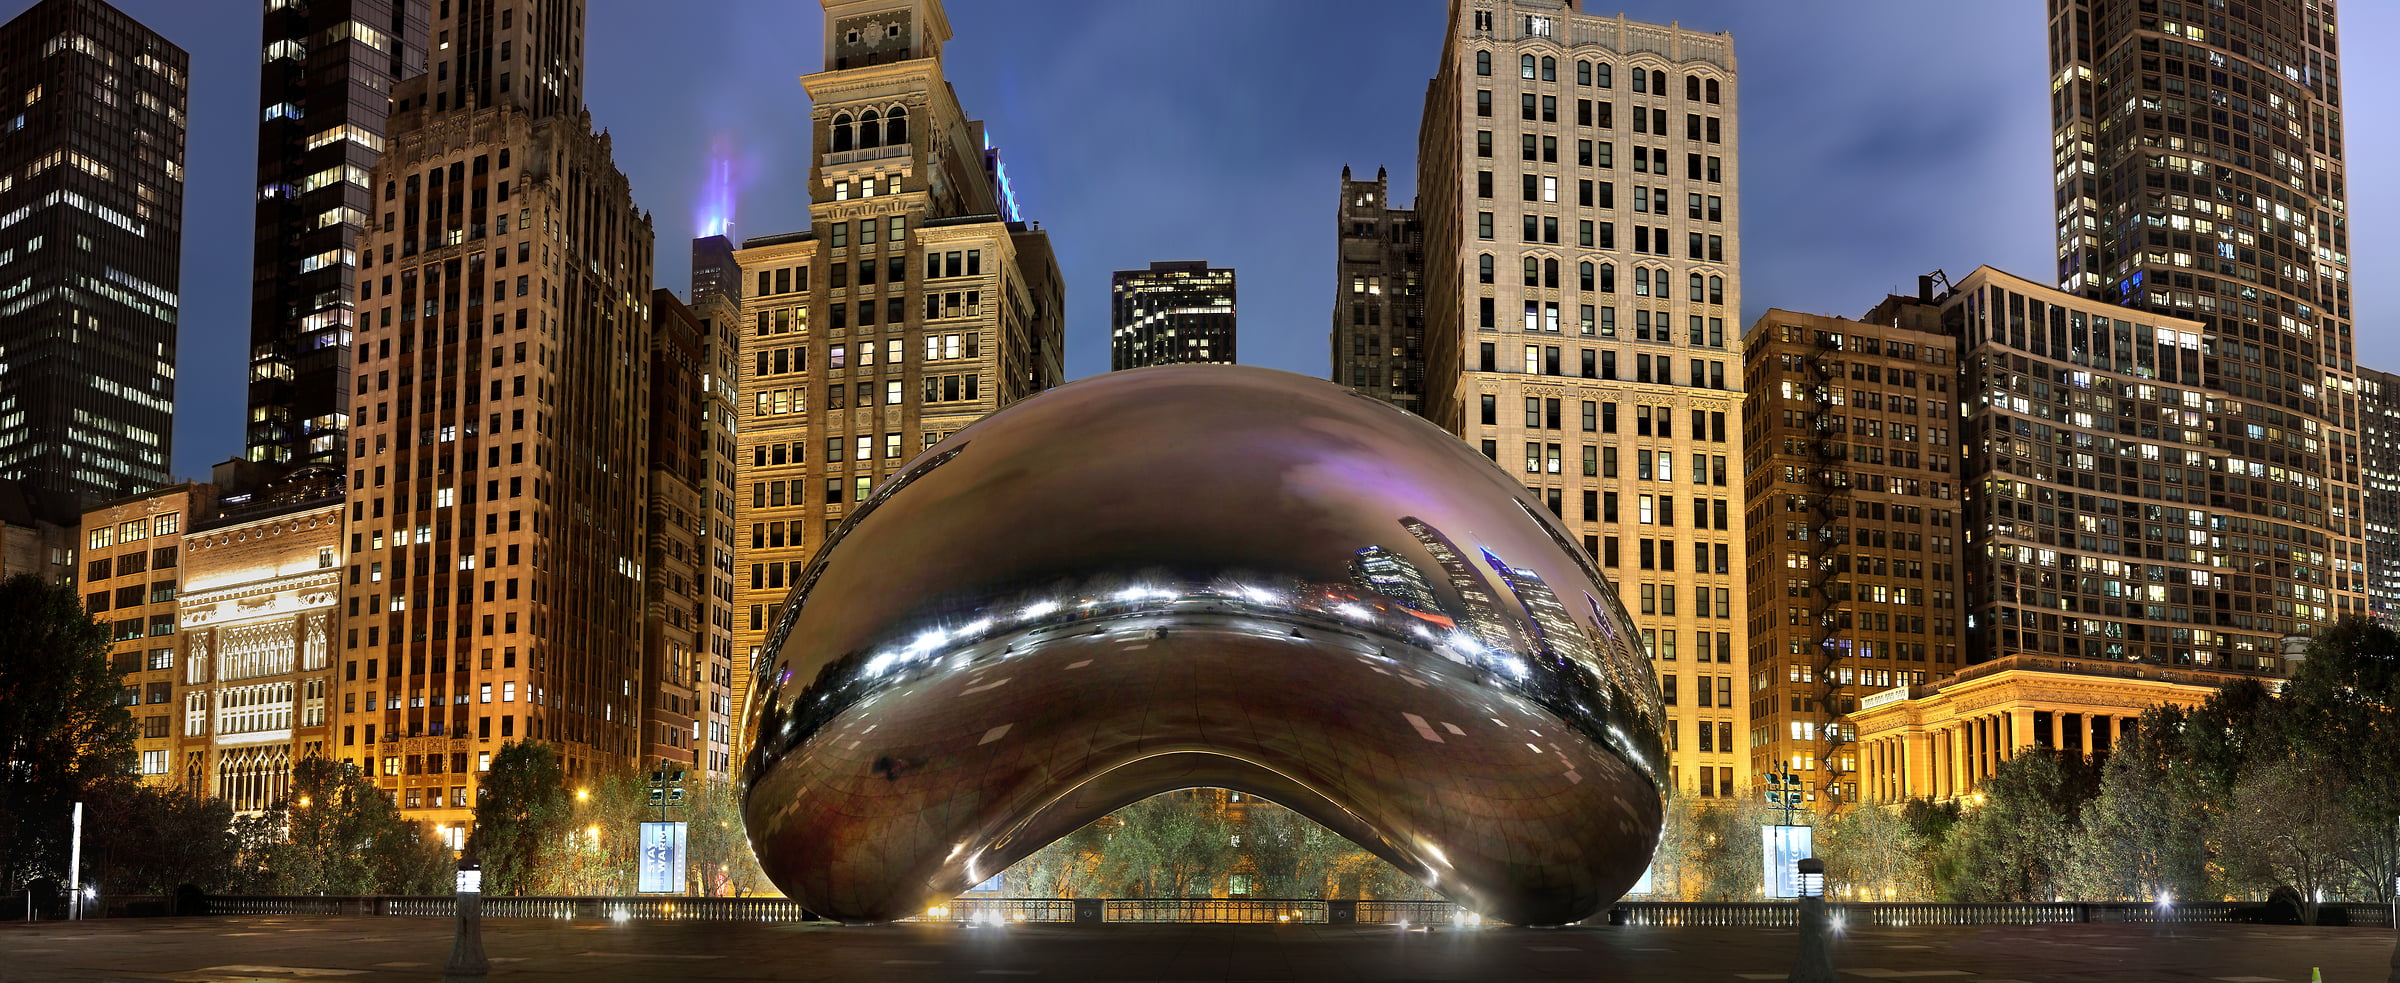 304 megapixels! A very high resolution, large-format VAST photo print of the Chicago Bean sculpture; photograph created by Phil Crawshay in Chicago, Illinois